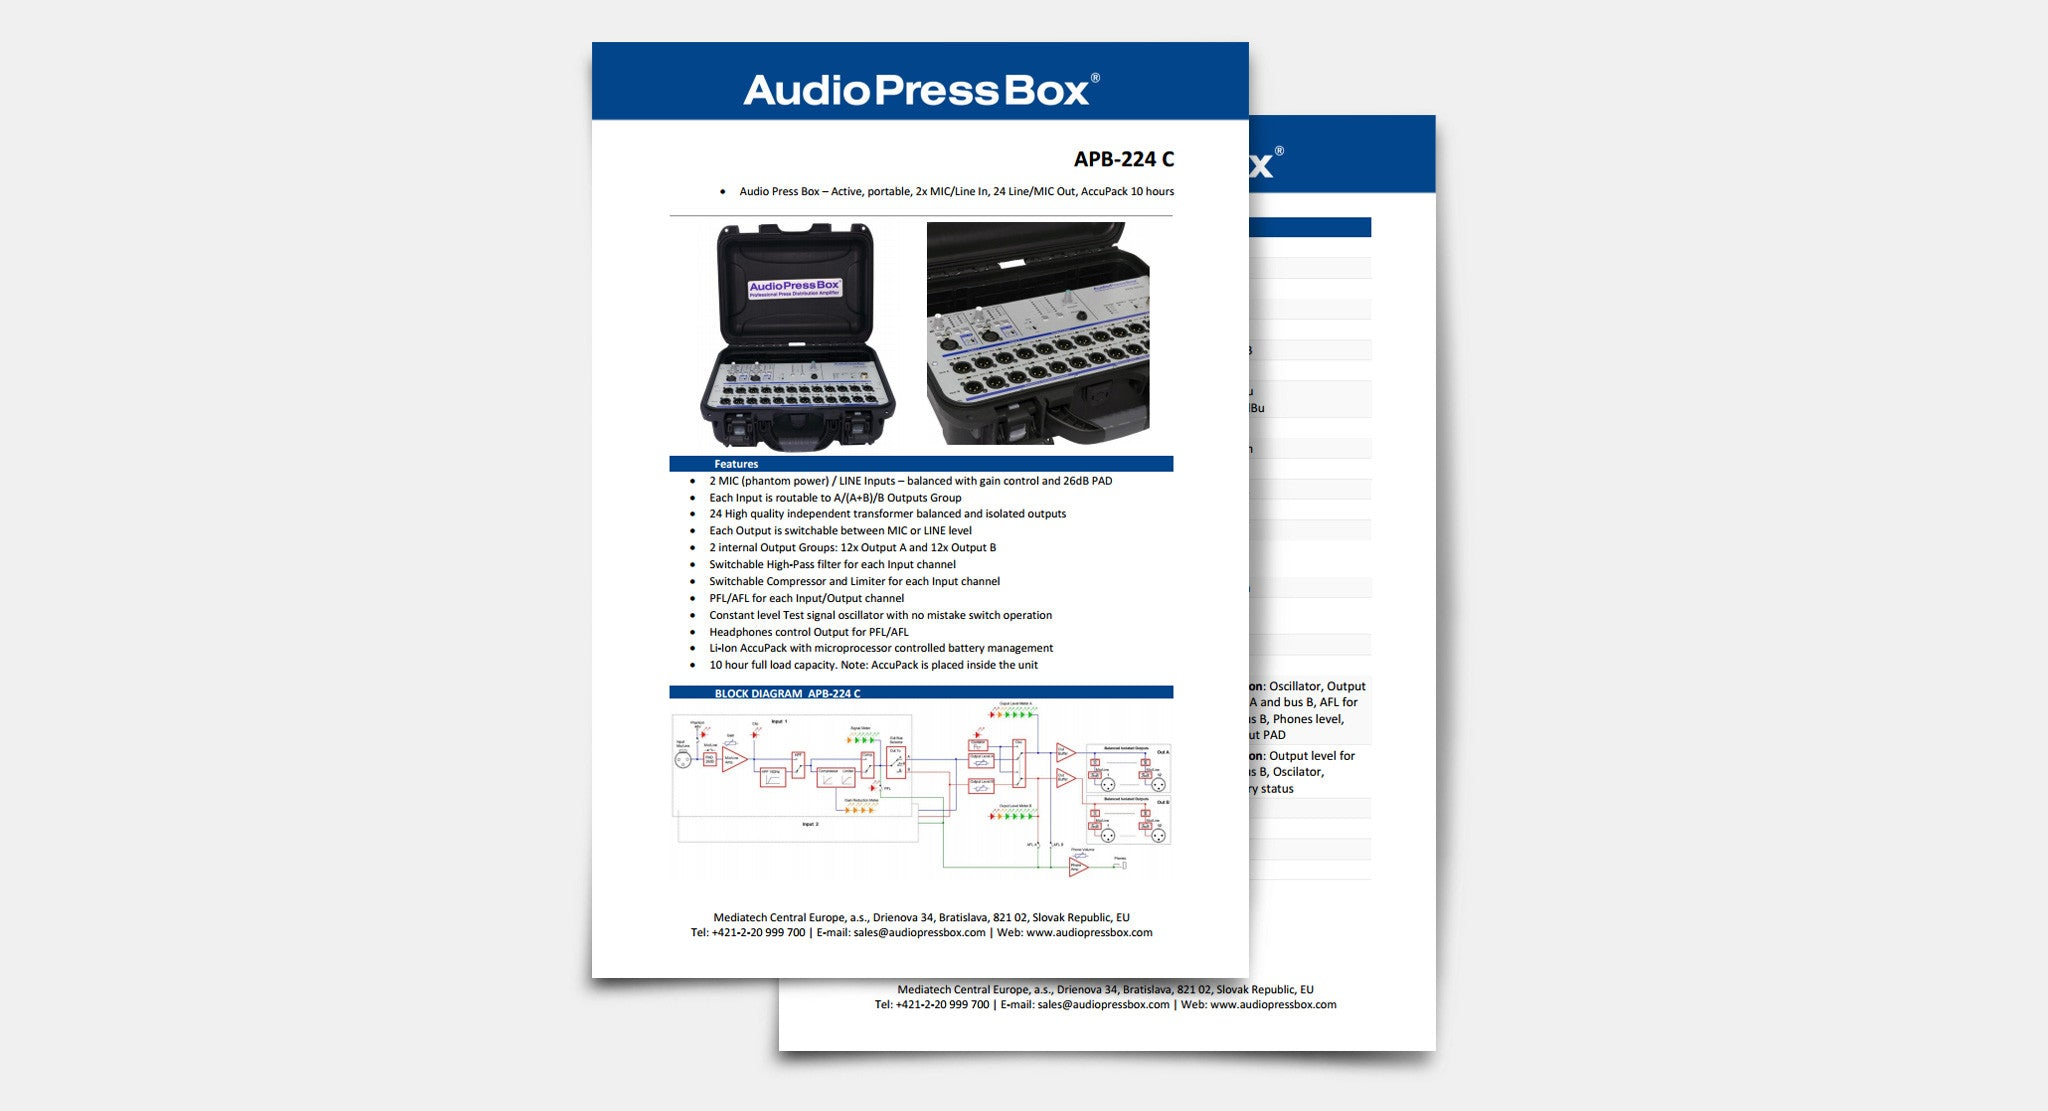 AudioPressBox Datenblatt, Pressebox Datenblatt